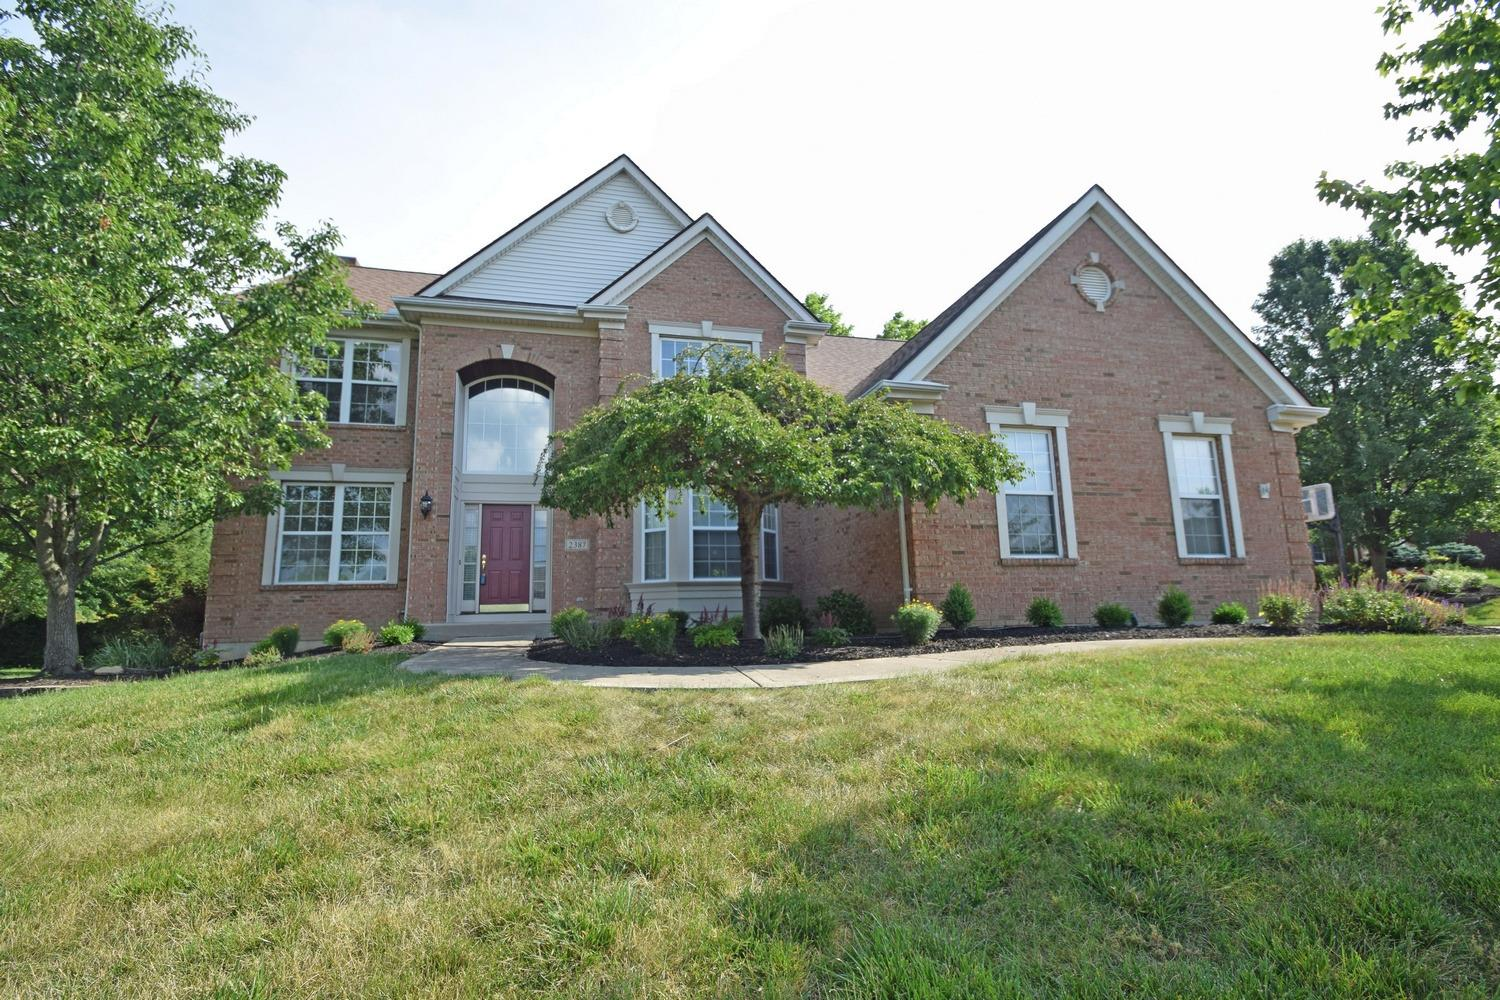 2387 Shimmering Bay Lane, Anderson Twp, OH 45244